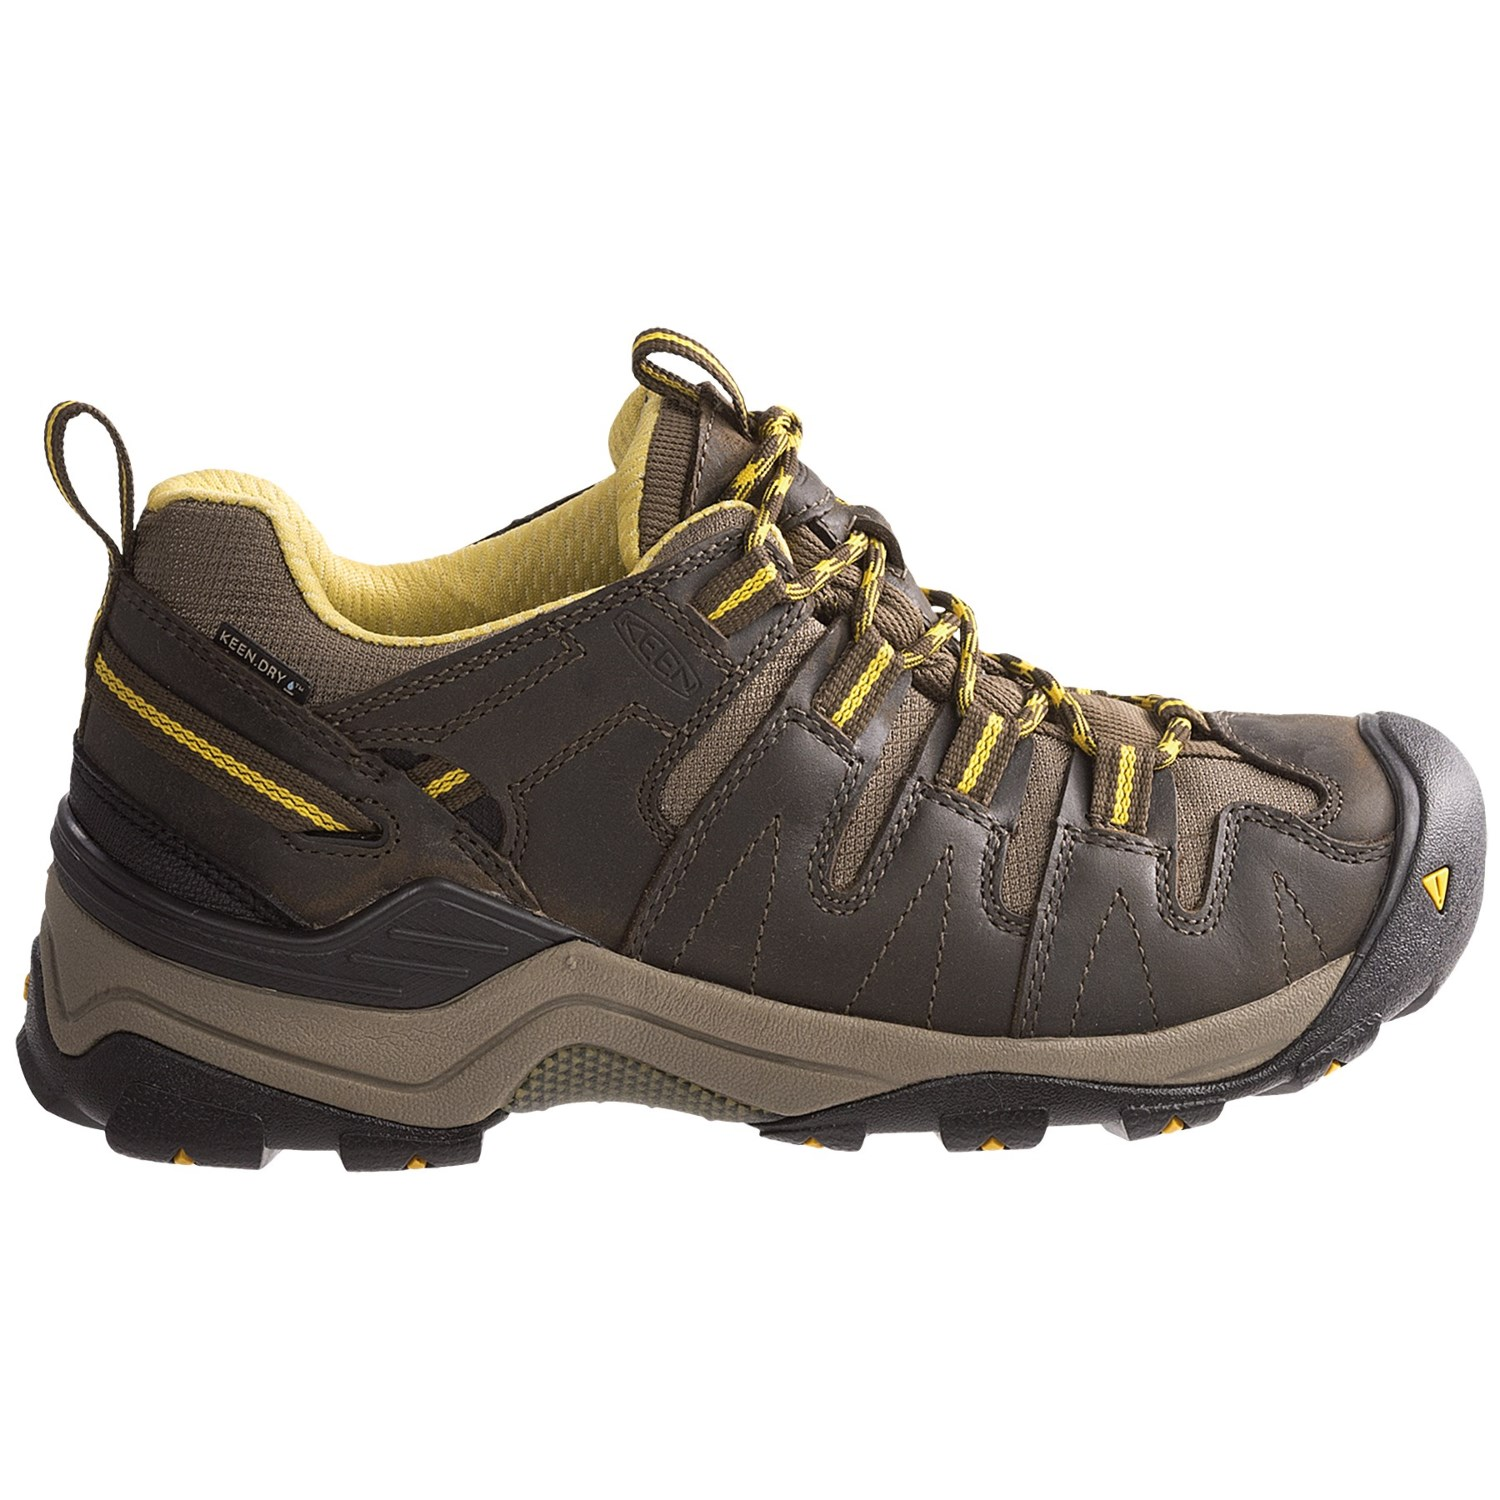 4f2052a06de0 Keen Trail Shoes Women Related Keywords   Suggestions - Keen Trail ...